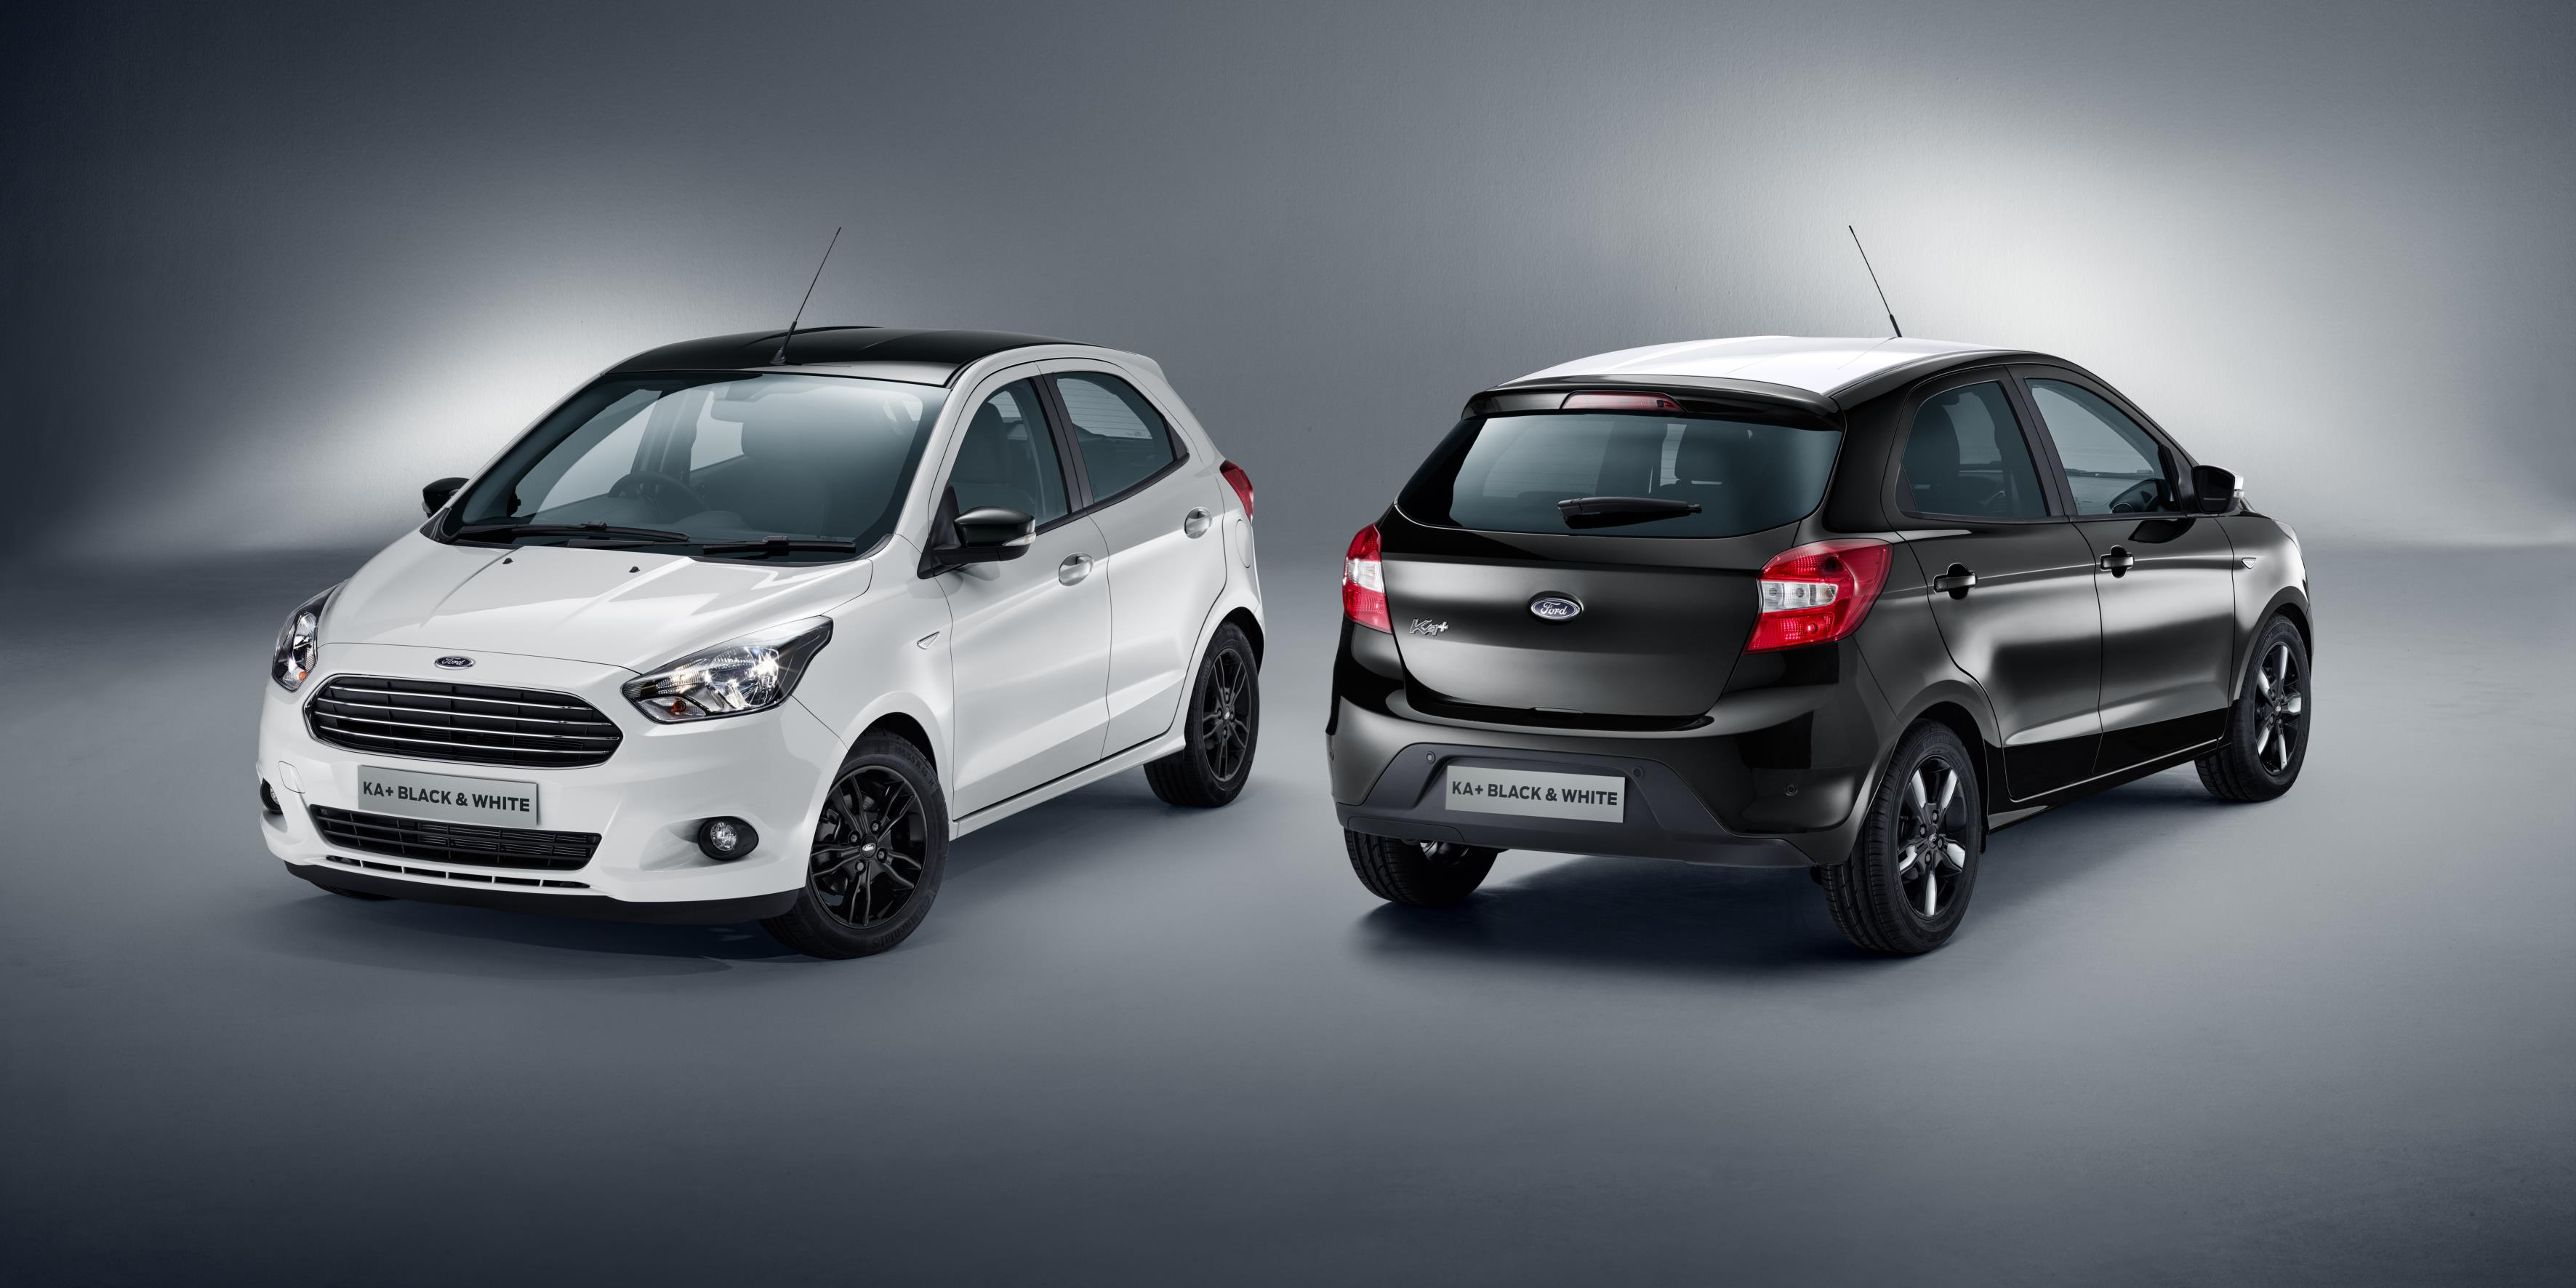 Ford KA+ black white front and rear